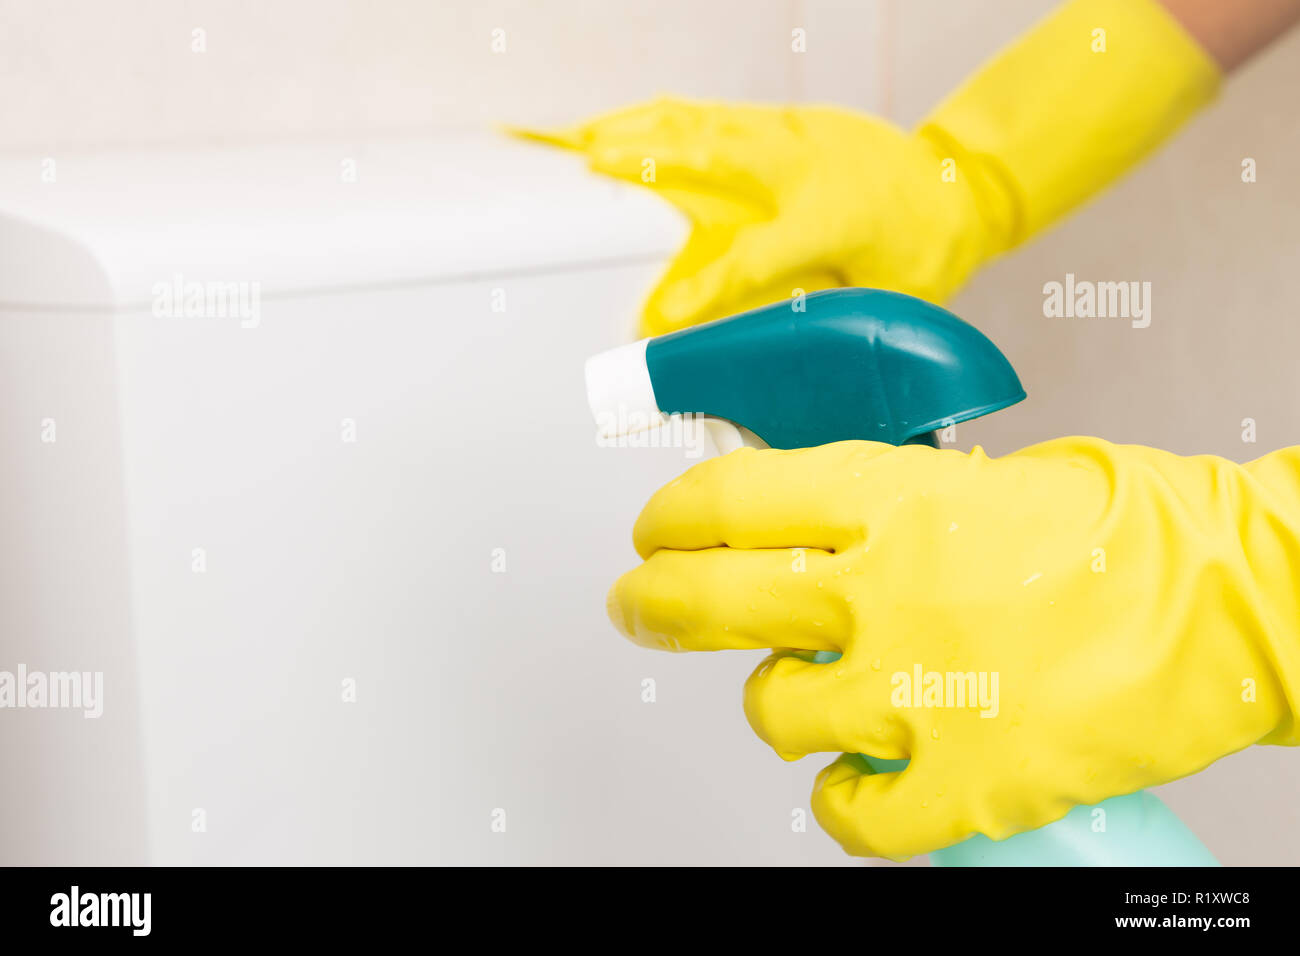 Selective focus picture of disinfectant spray held by person wearing sanitary gloves cleaning wc - Stock Image